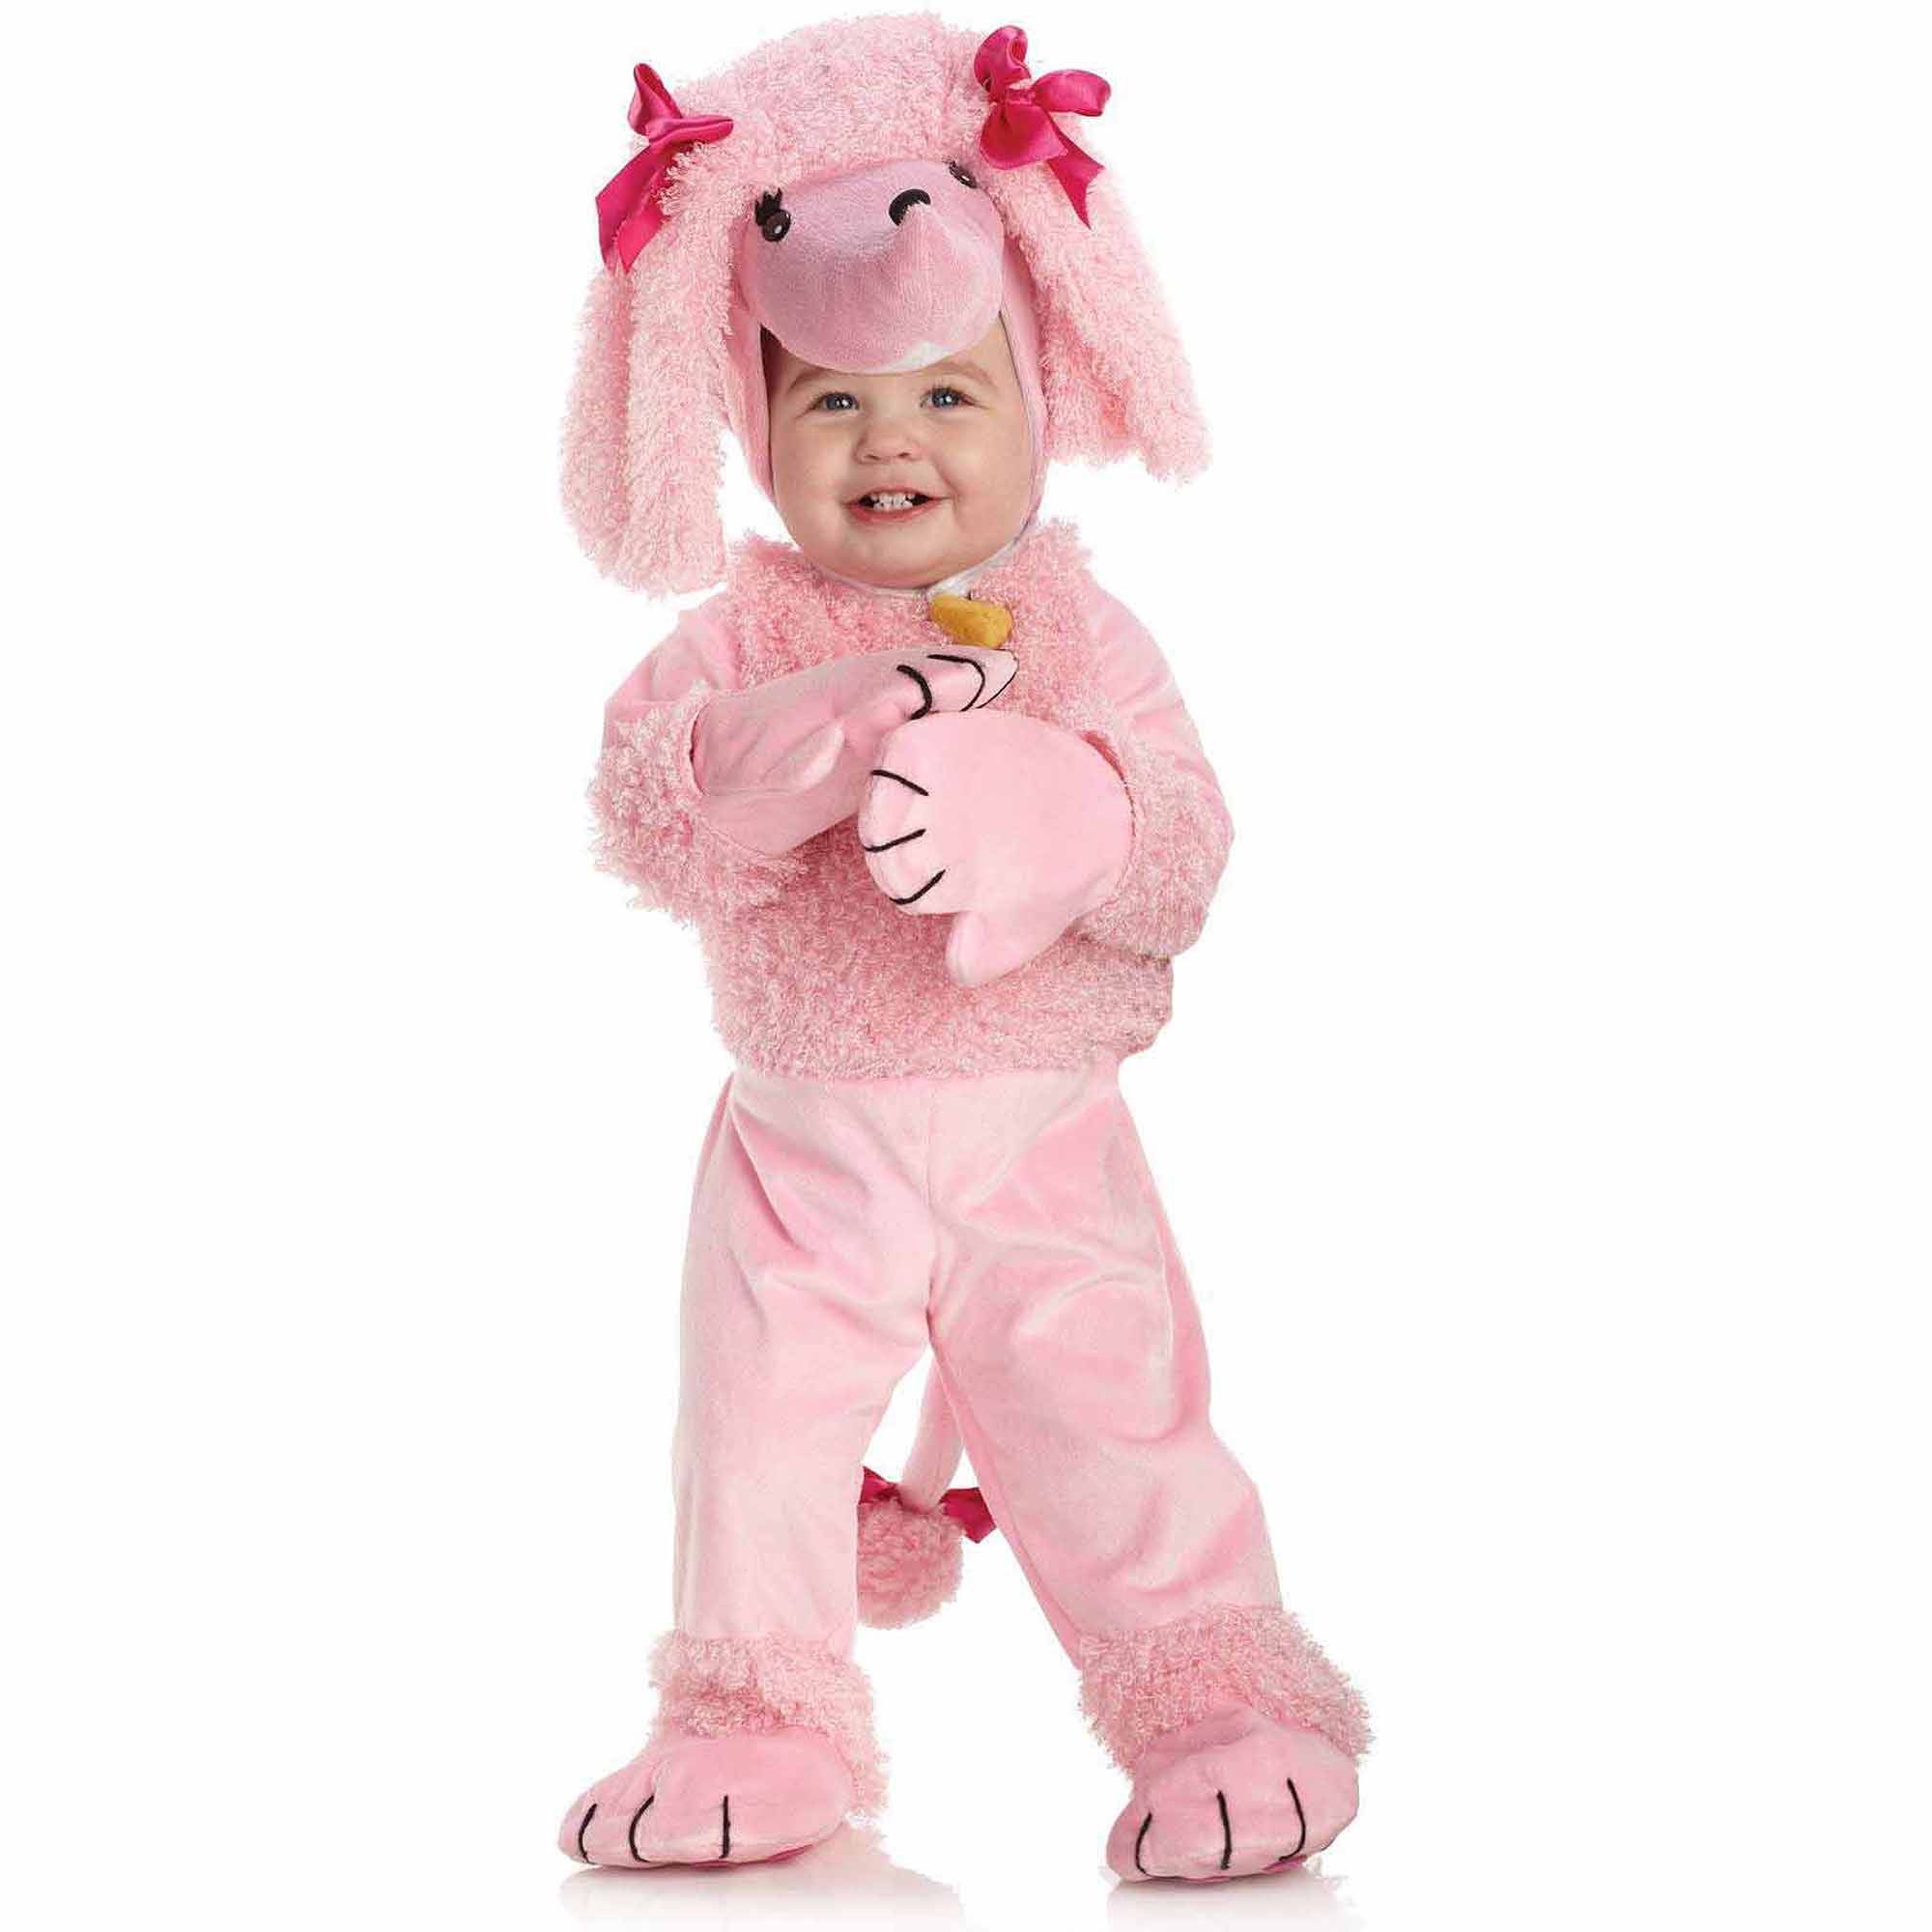 Pink Poodle Child Halloween Costume, 4-6